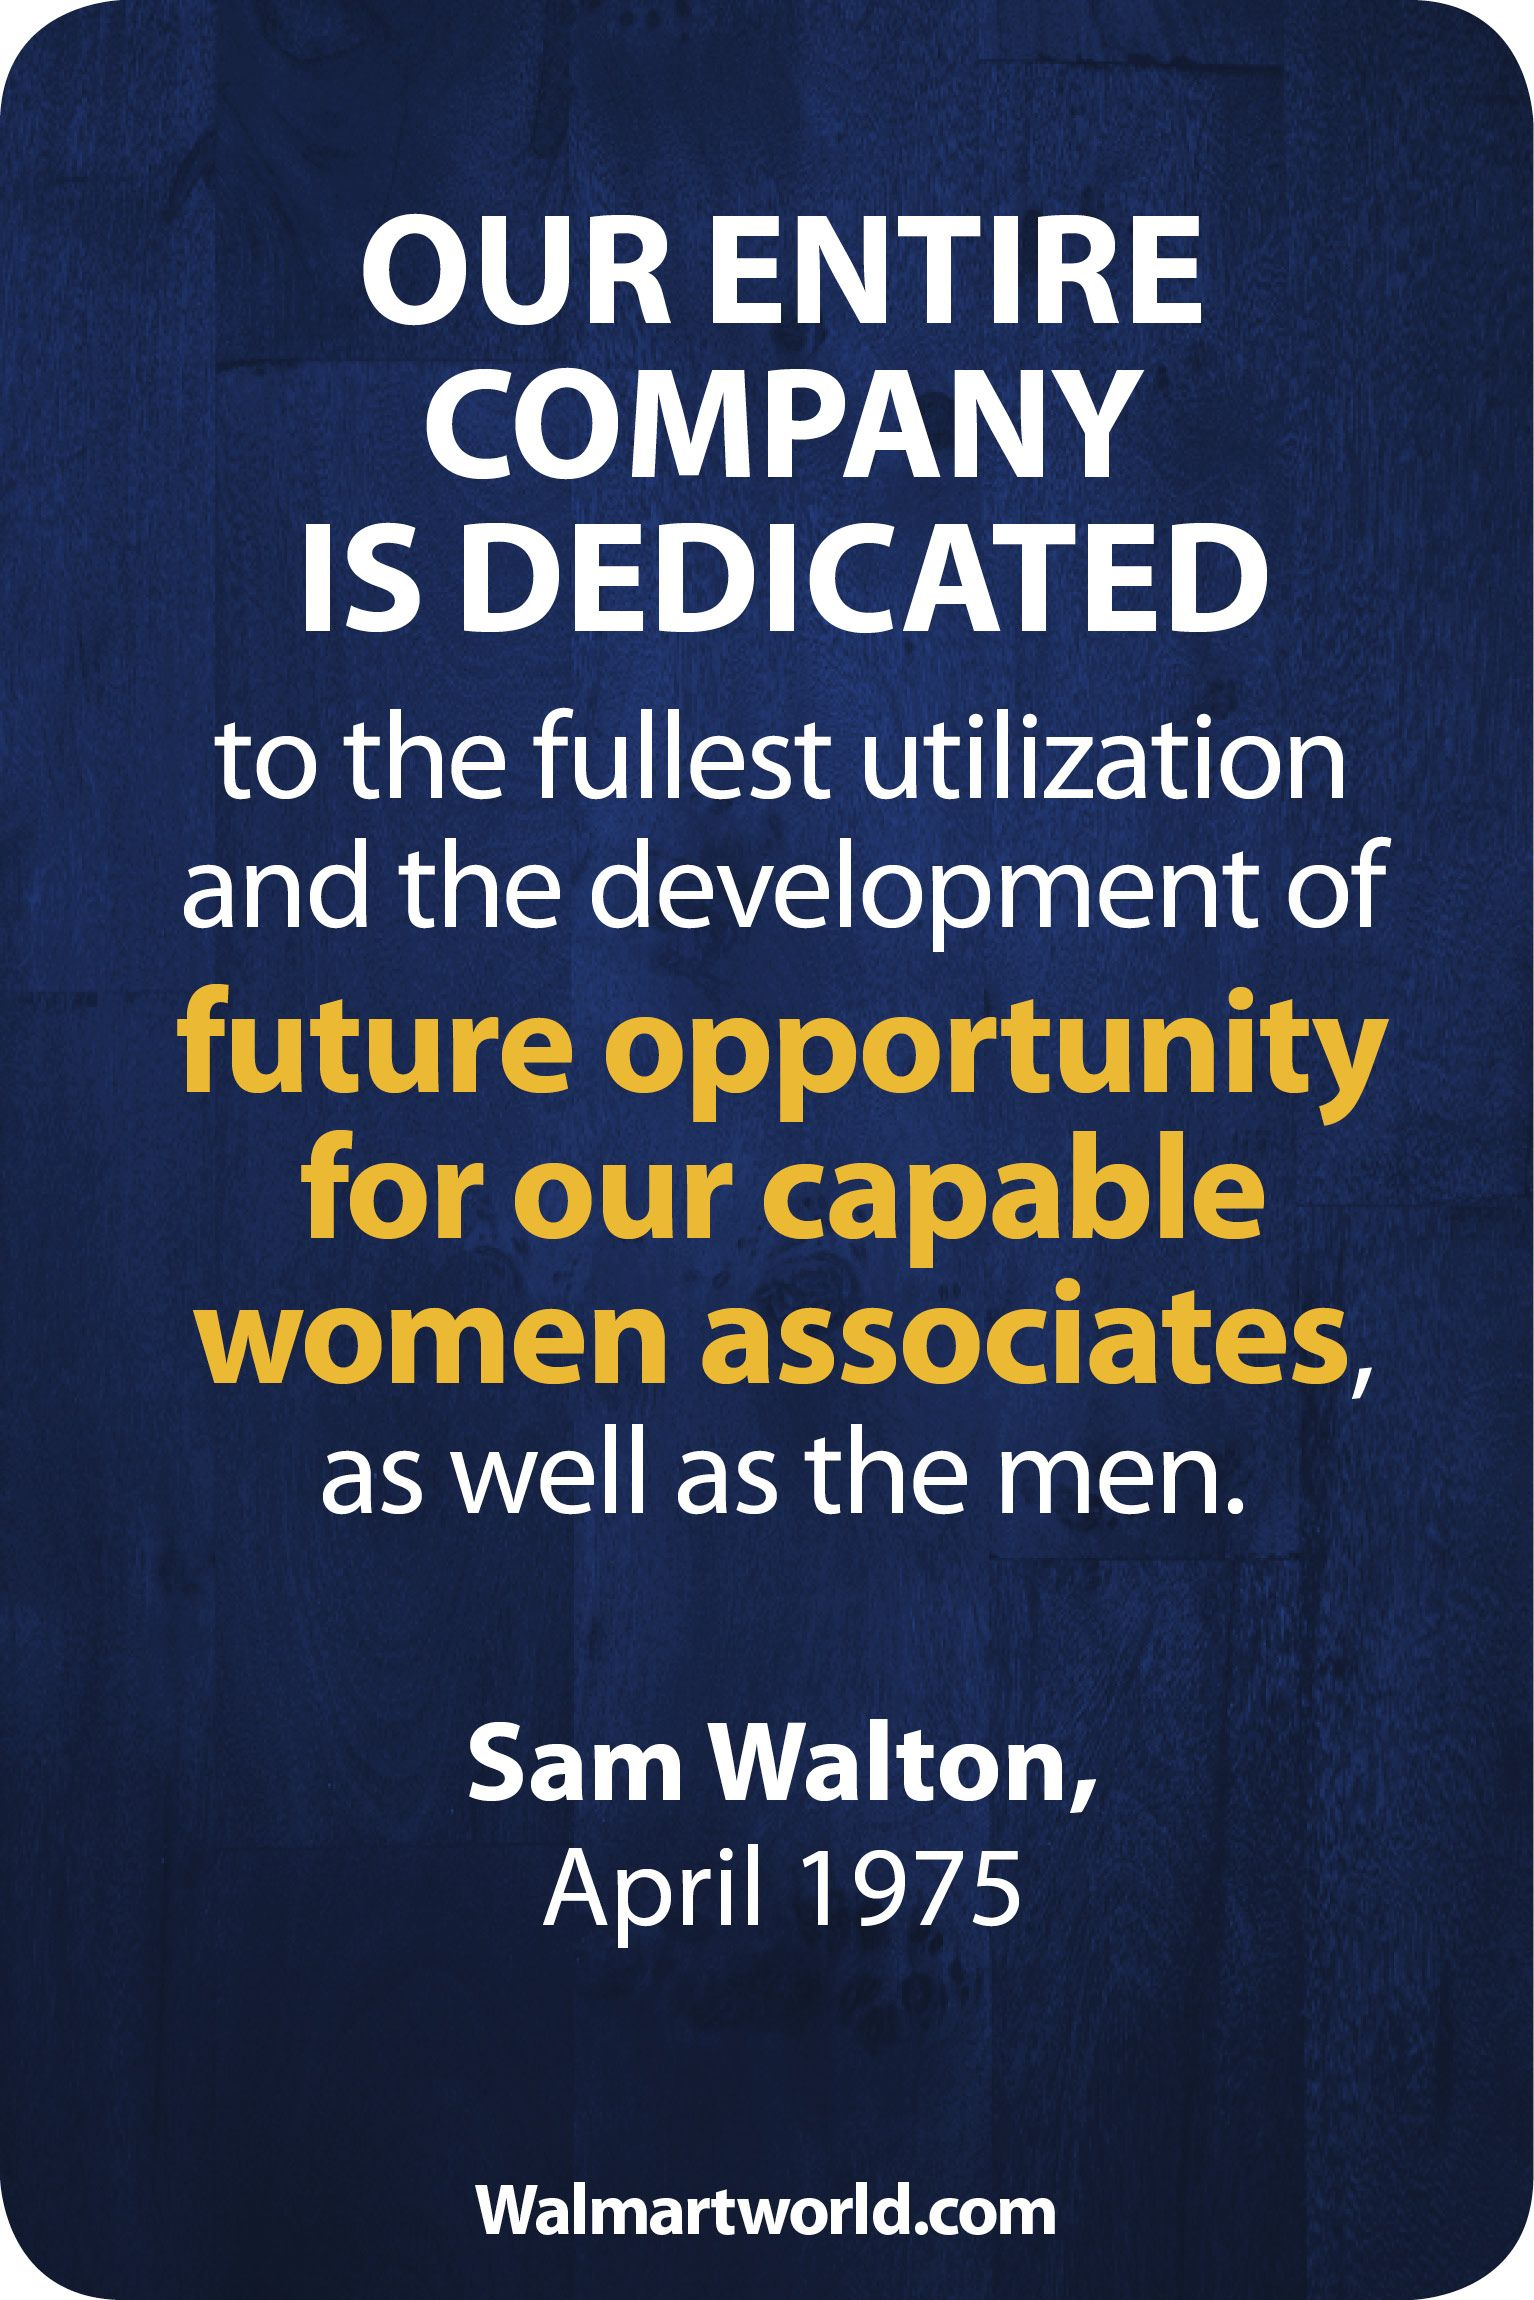 Message from sam walton october 1975 heritage our